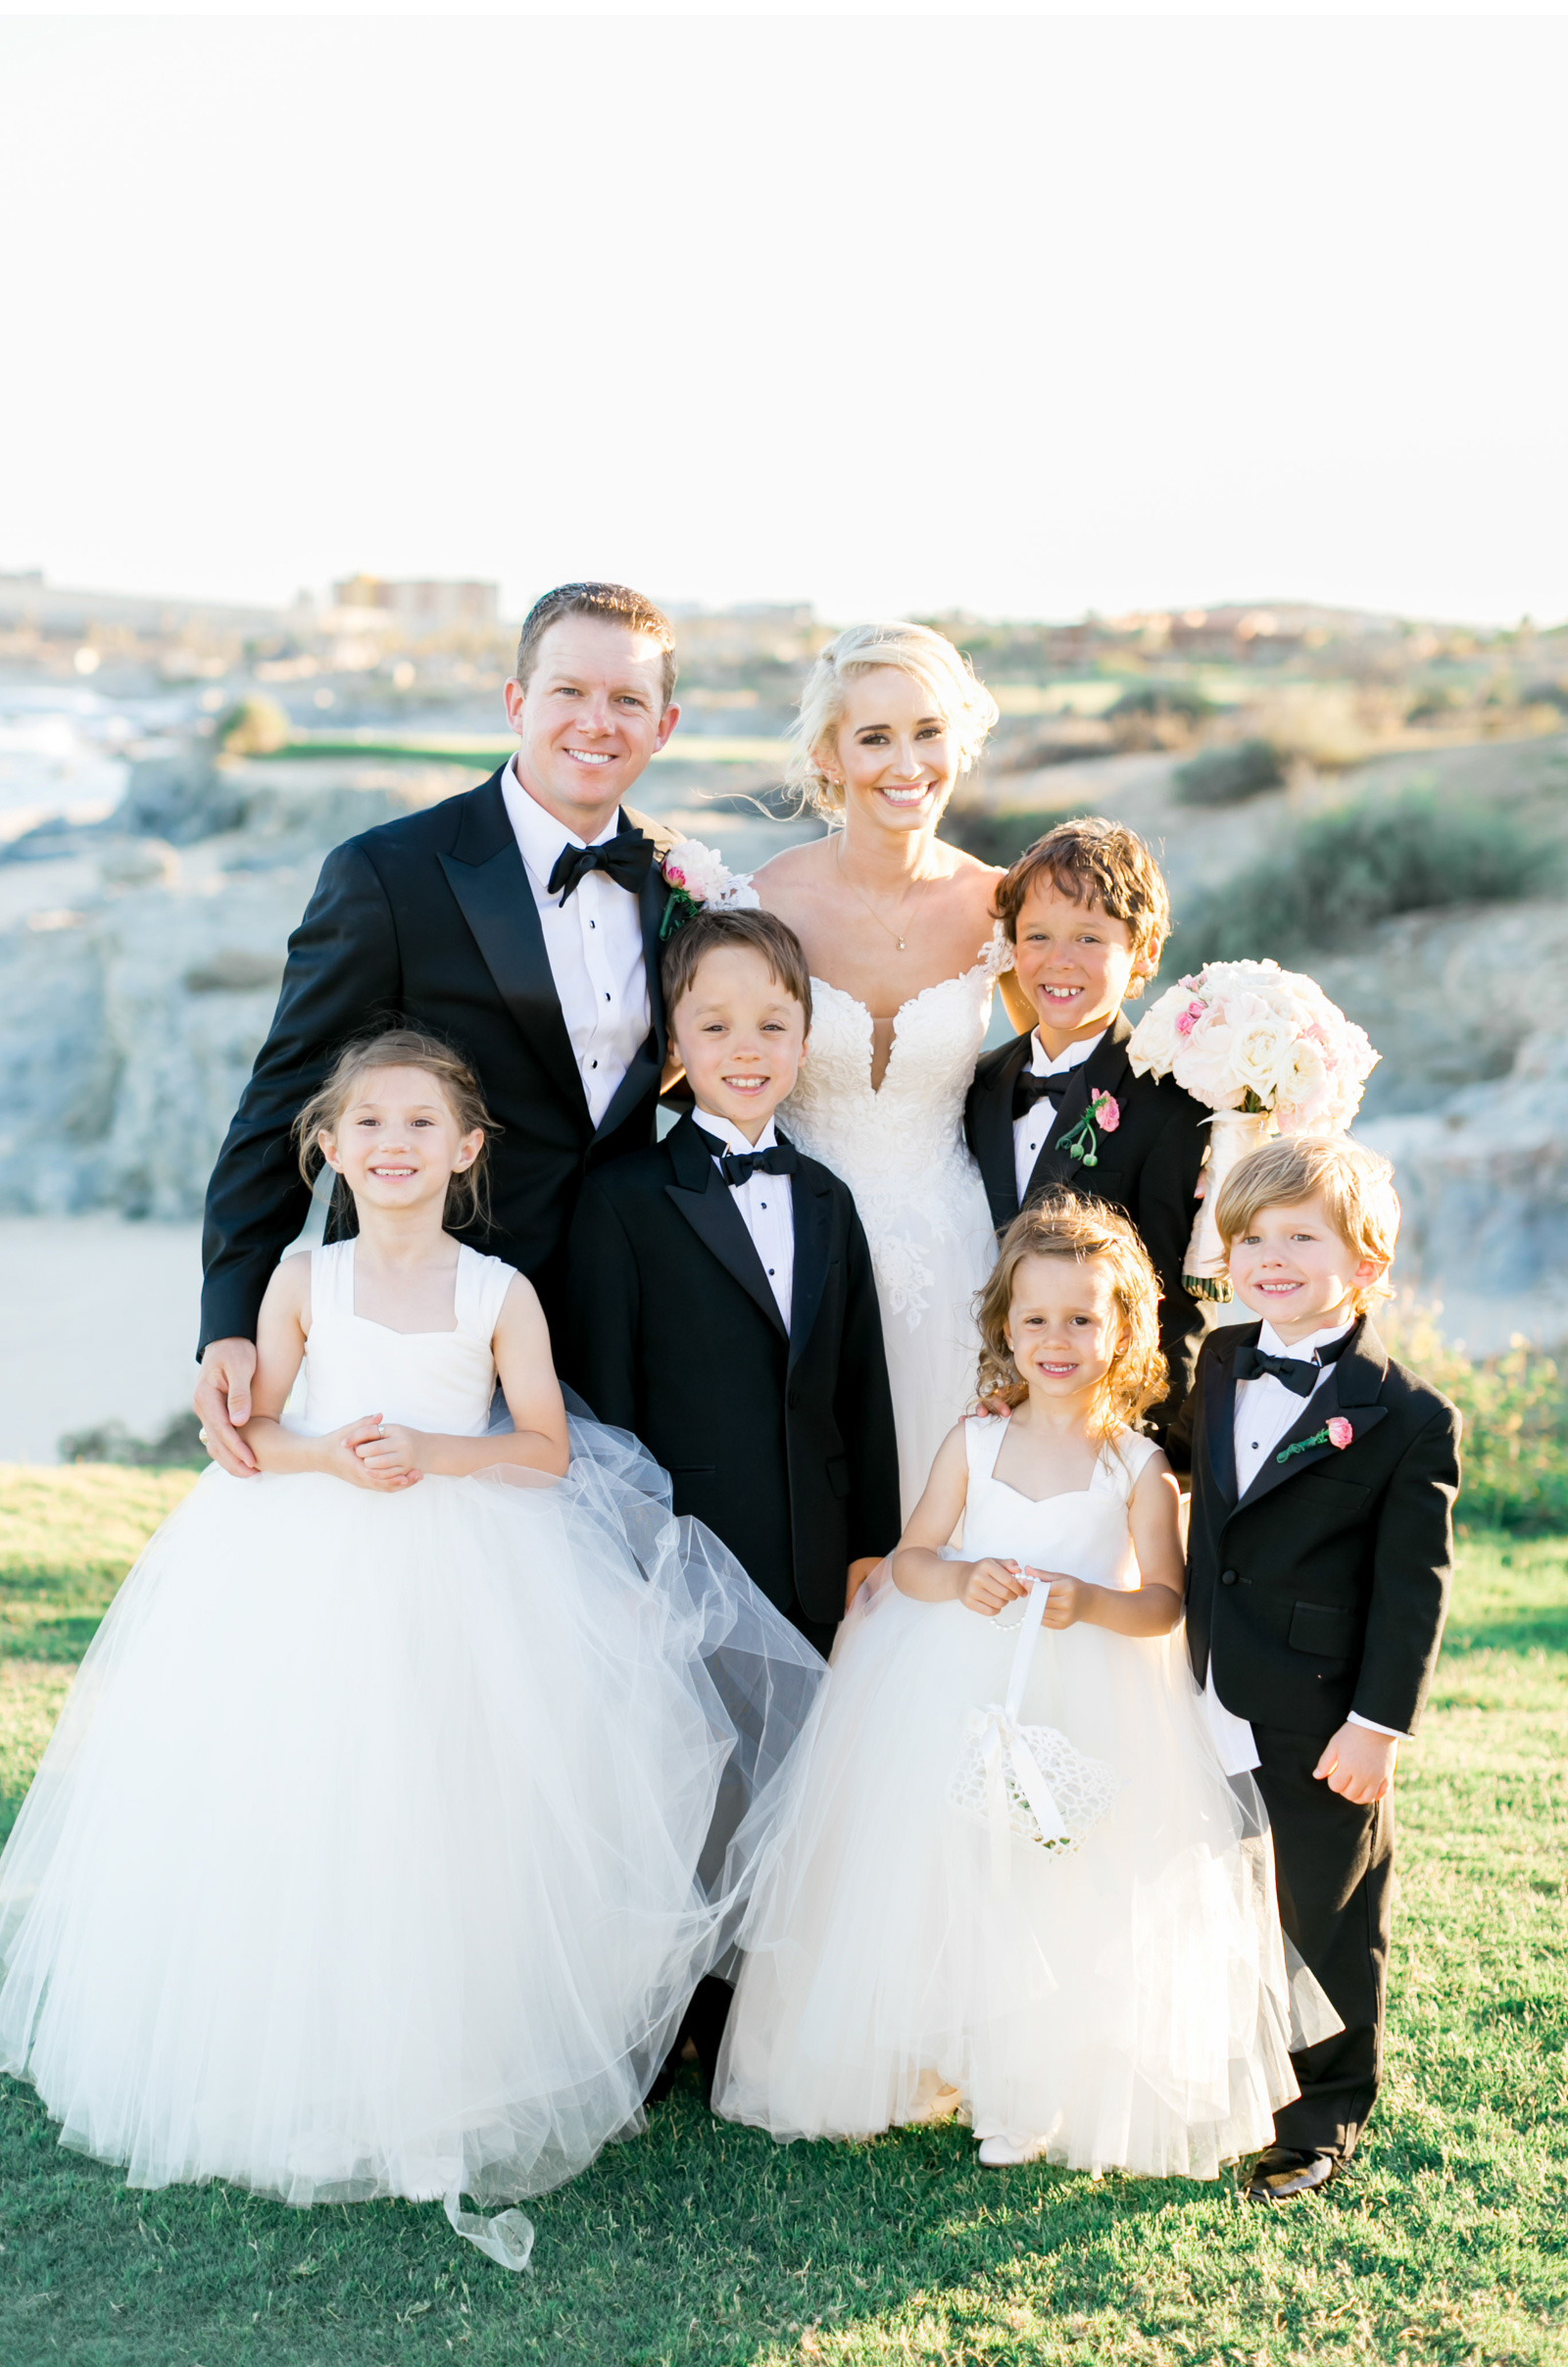 Style-Me-Pretty-Cabo-Wedding-Natalie-Schutt-Photography_01.jpg